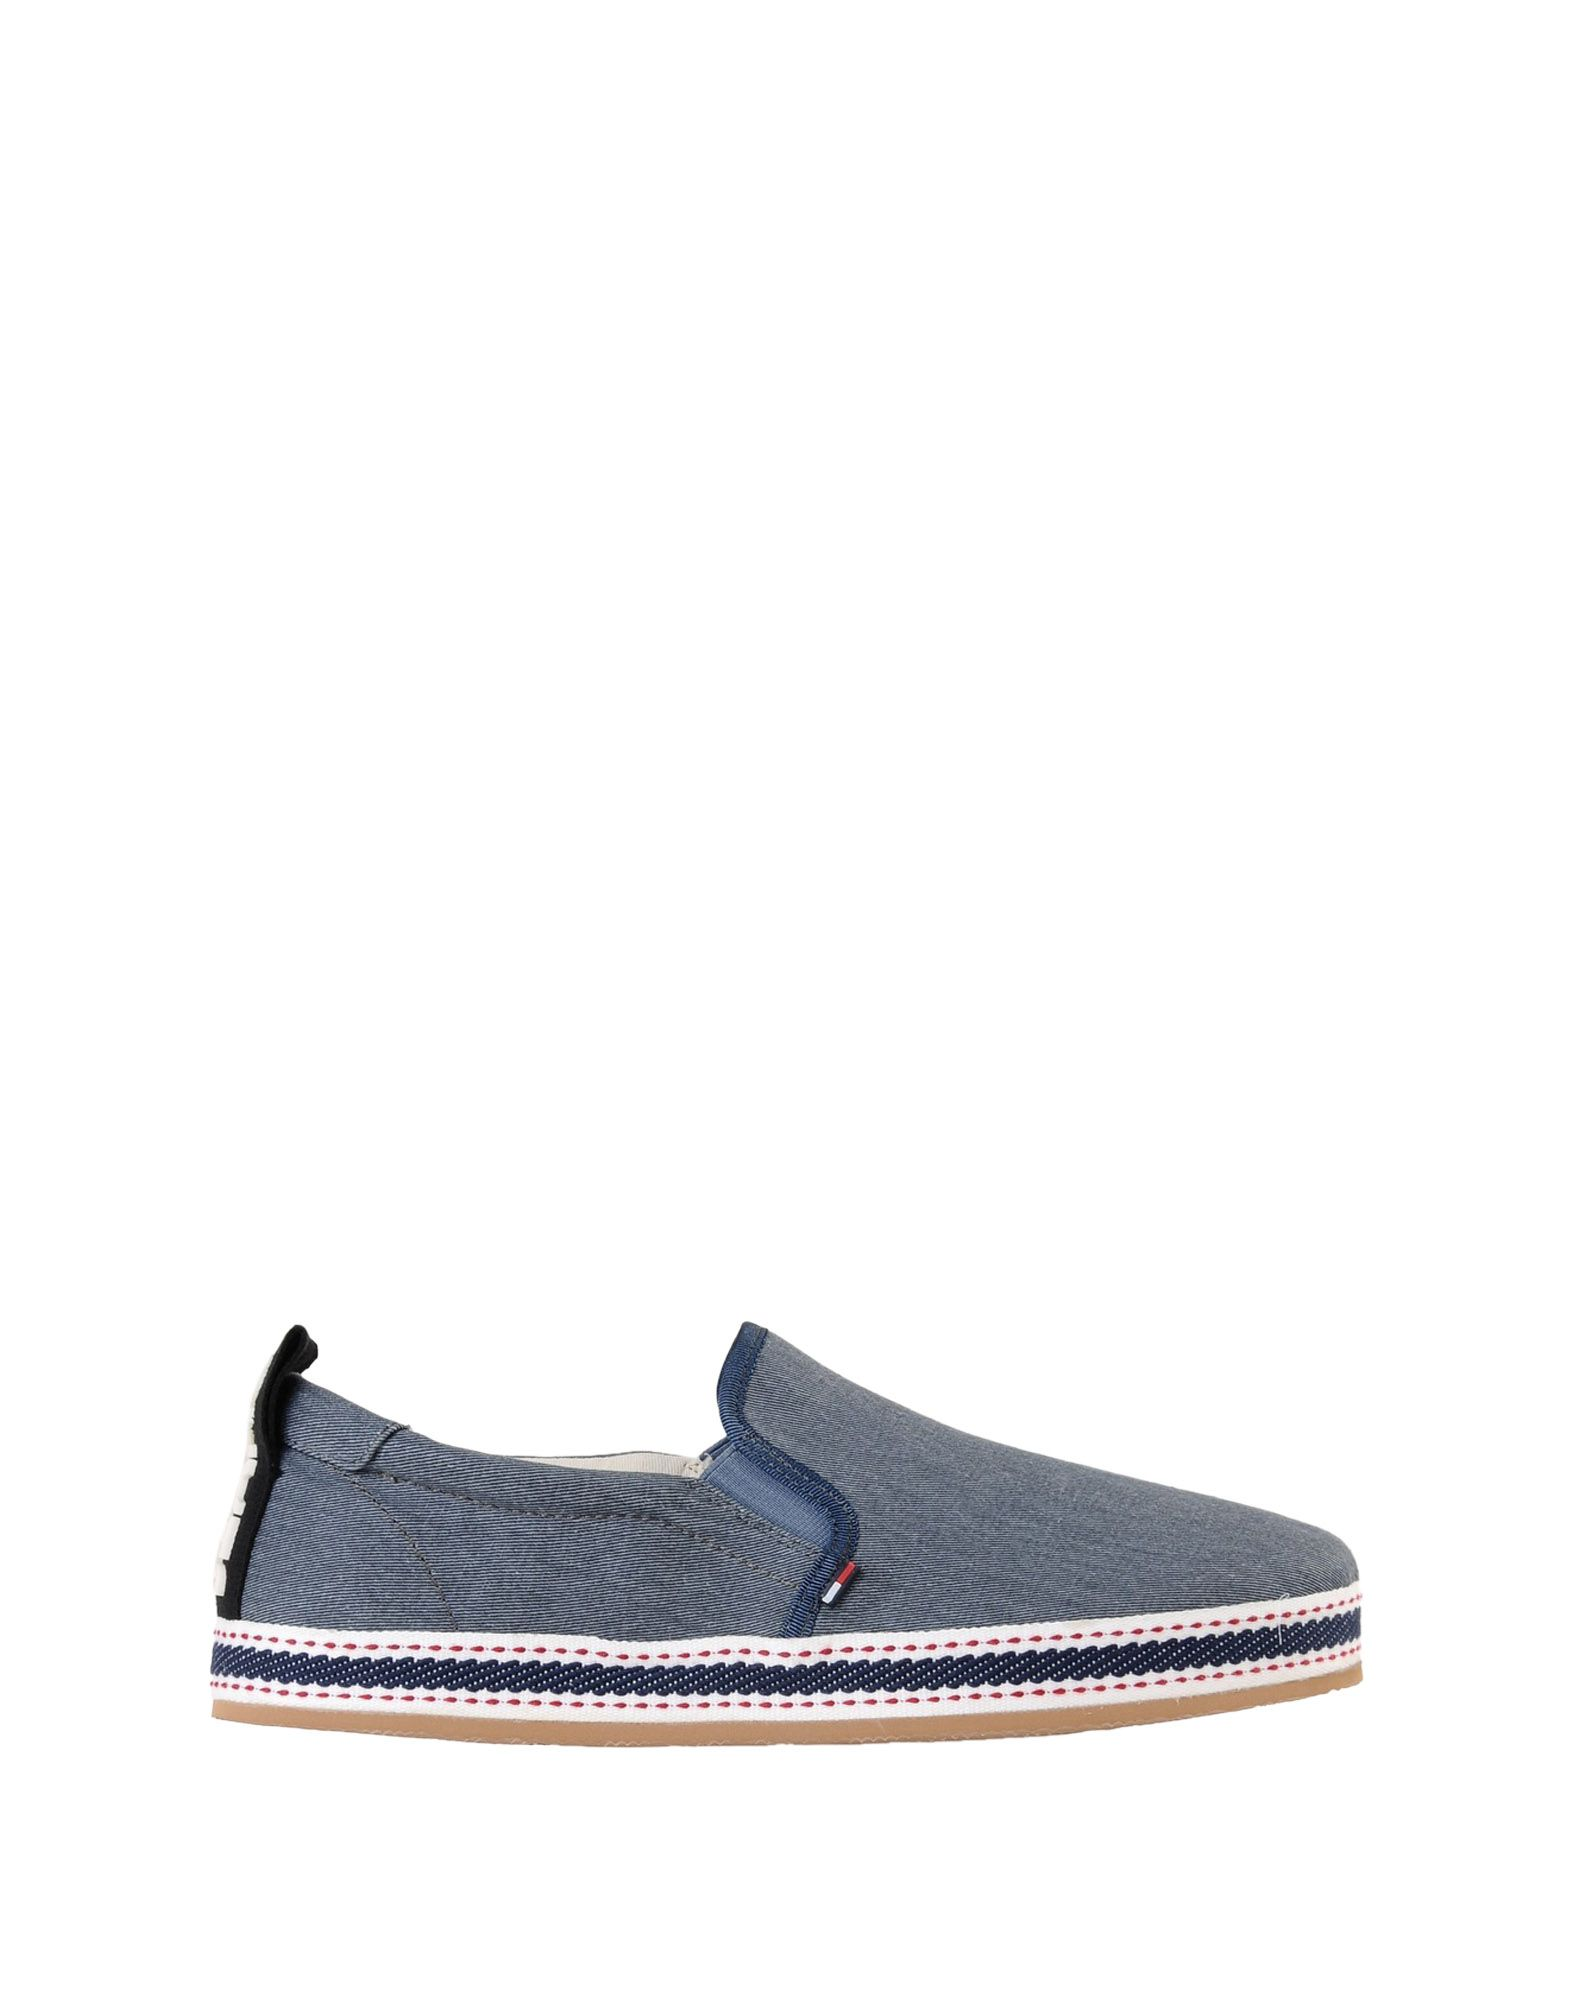 Sneakers Tommy Jeans Femme - Sneakers Tommy Jeans sur